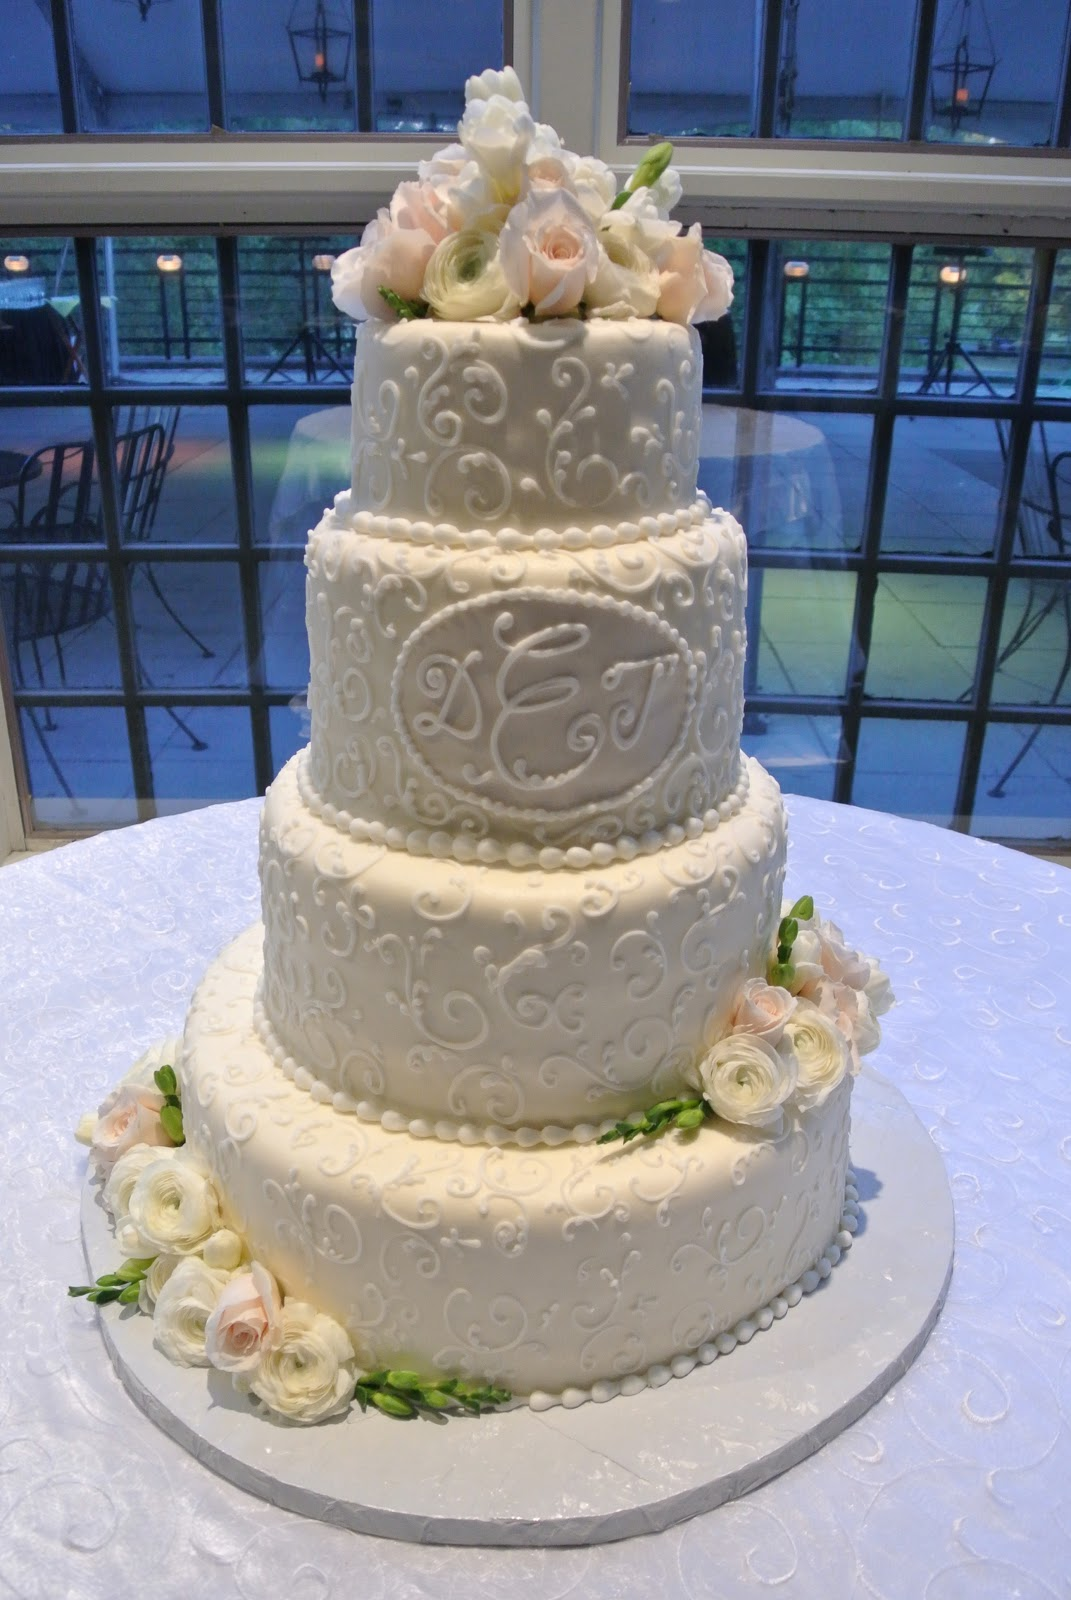 Cake Decor And More 1220 : Blissful on the Bayou: DEDE S WEDDING